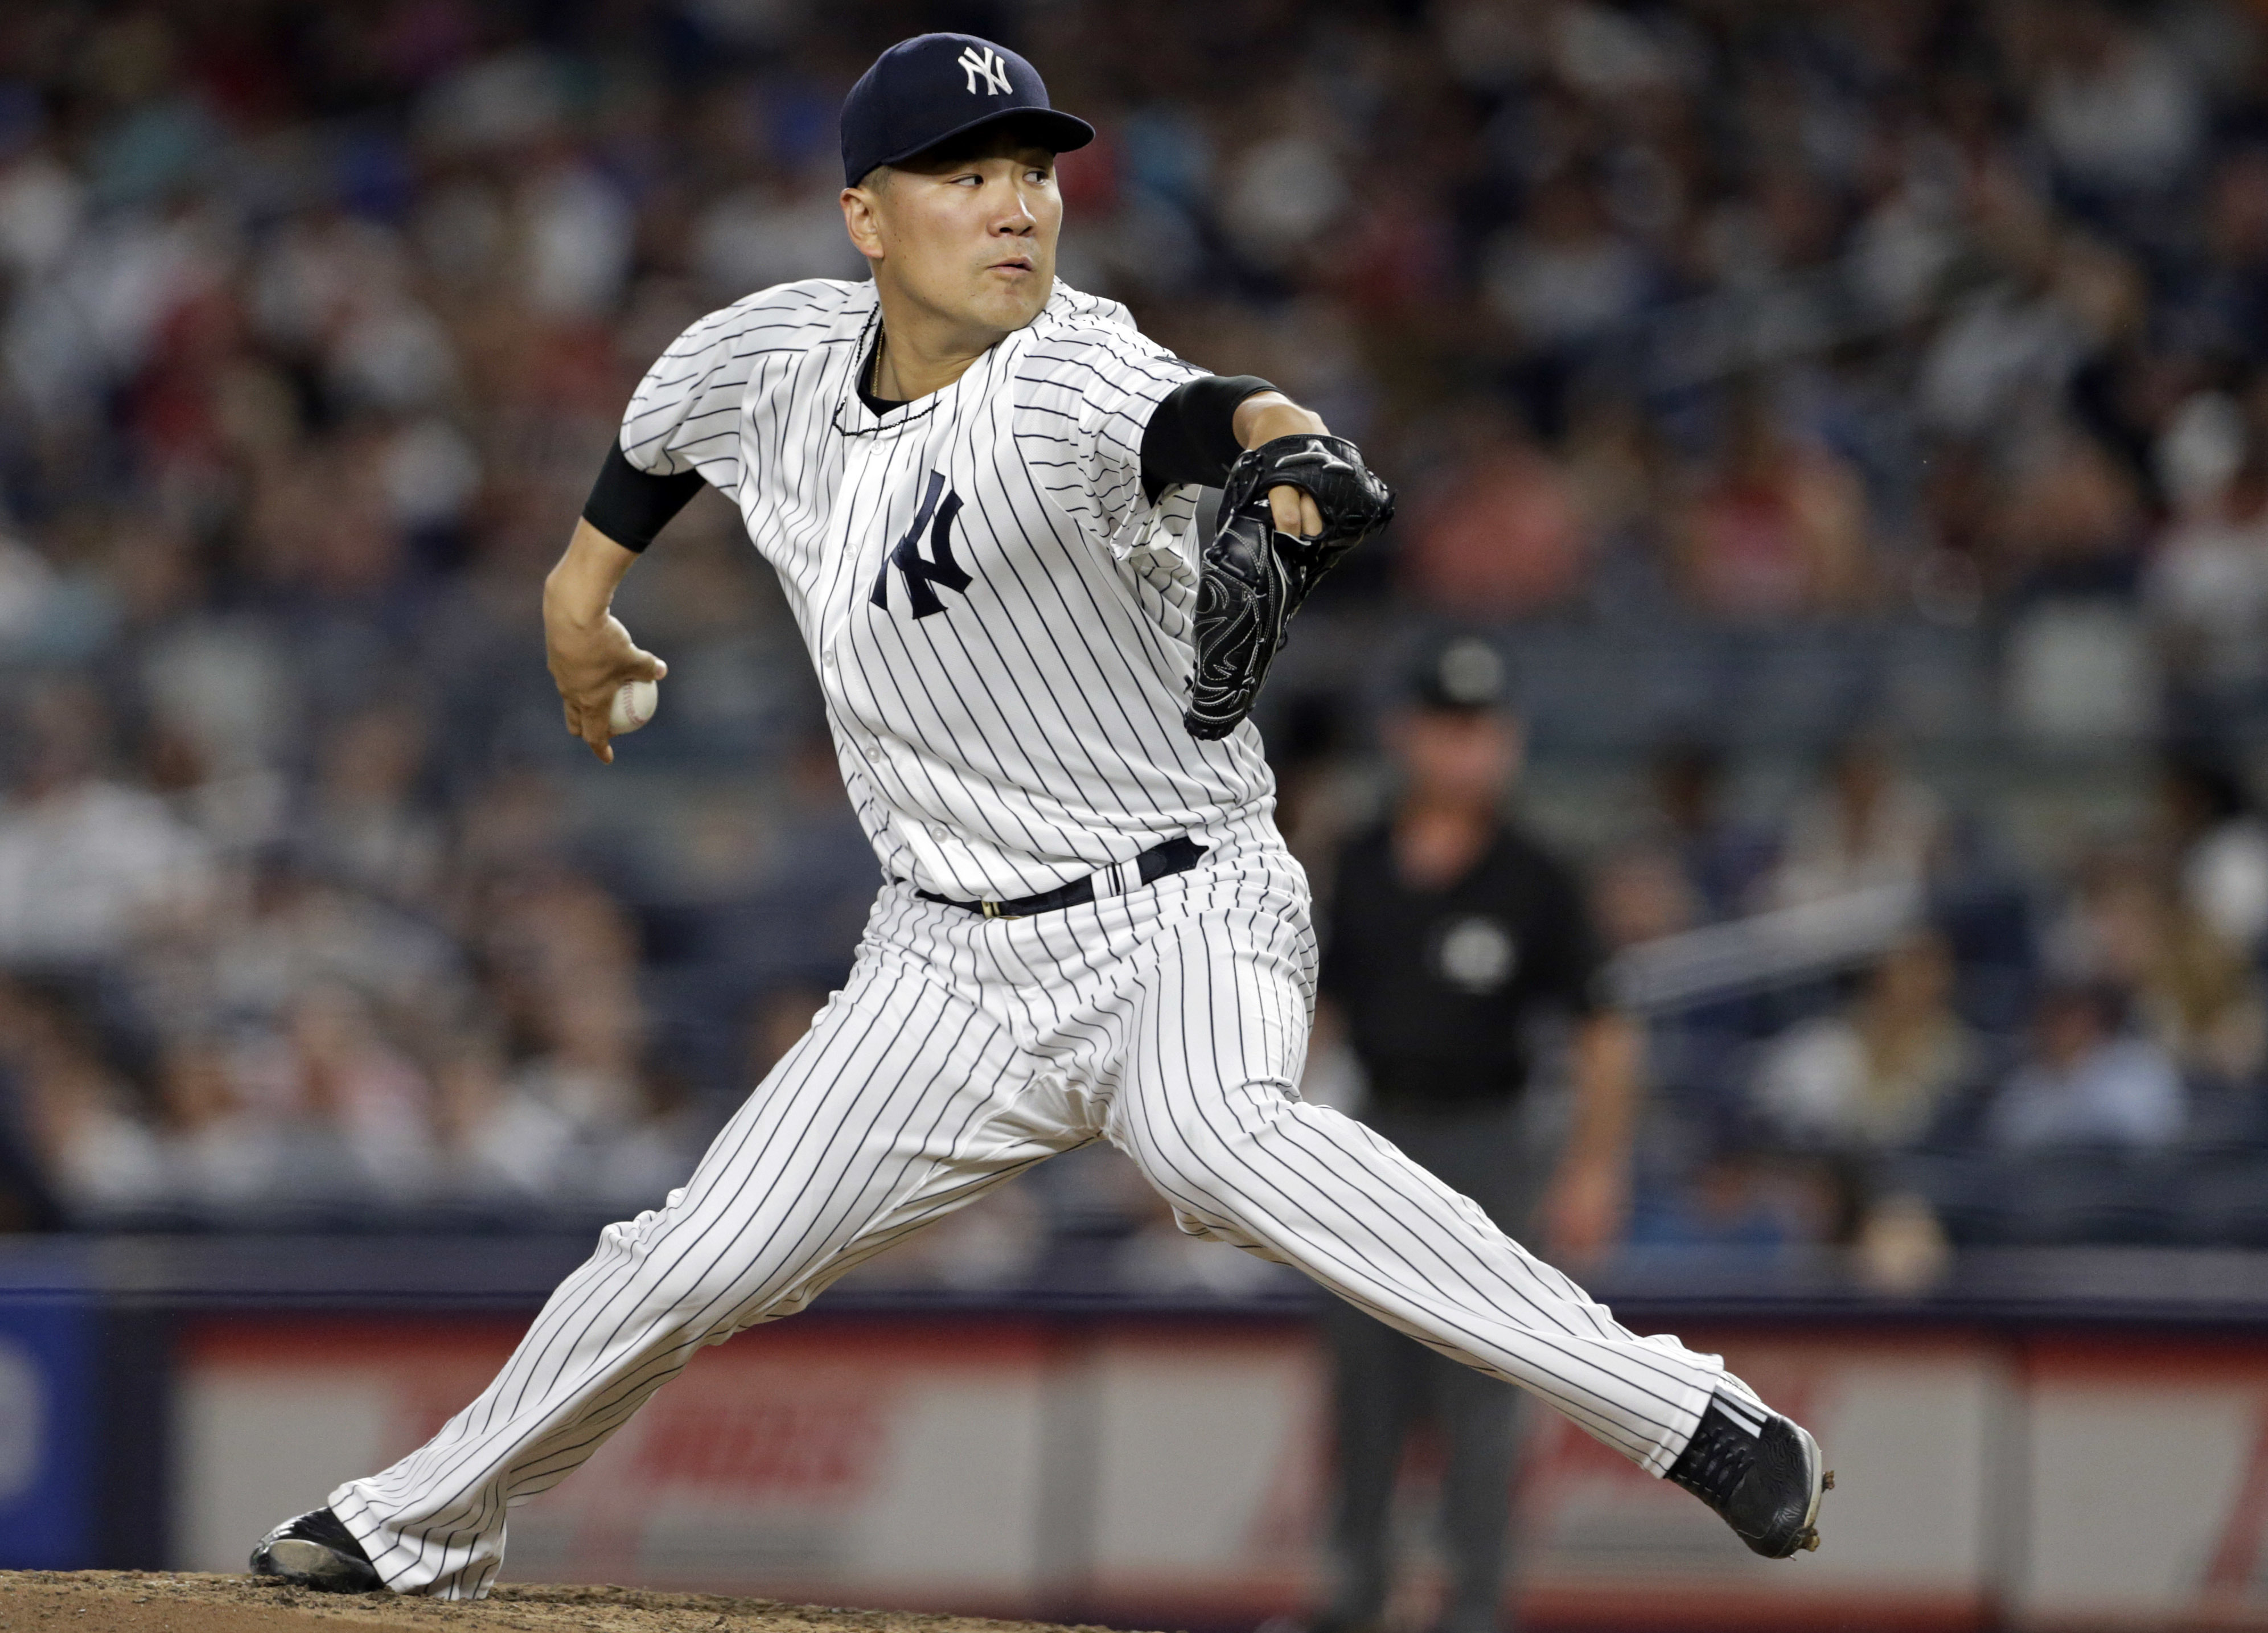 New York Yankees starting pitcher Masahiro Tanaka (19) delivers a pitch during the third inning of a baseball game against the Boston Red Sox on Sunday, July 17, 2016, in New York. (AP Photo/Adam Hunger)